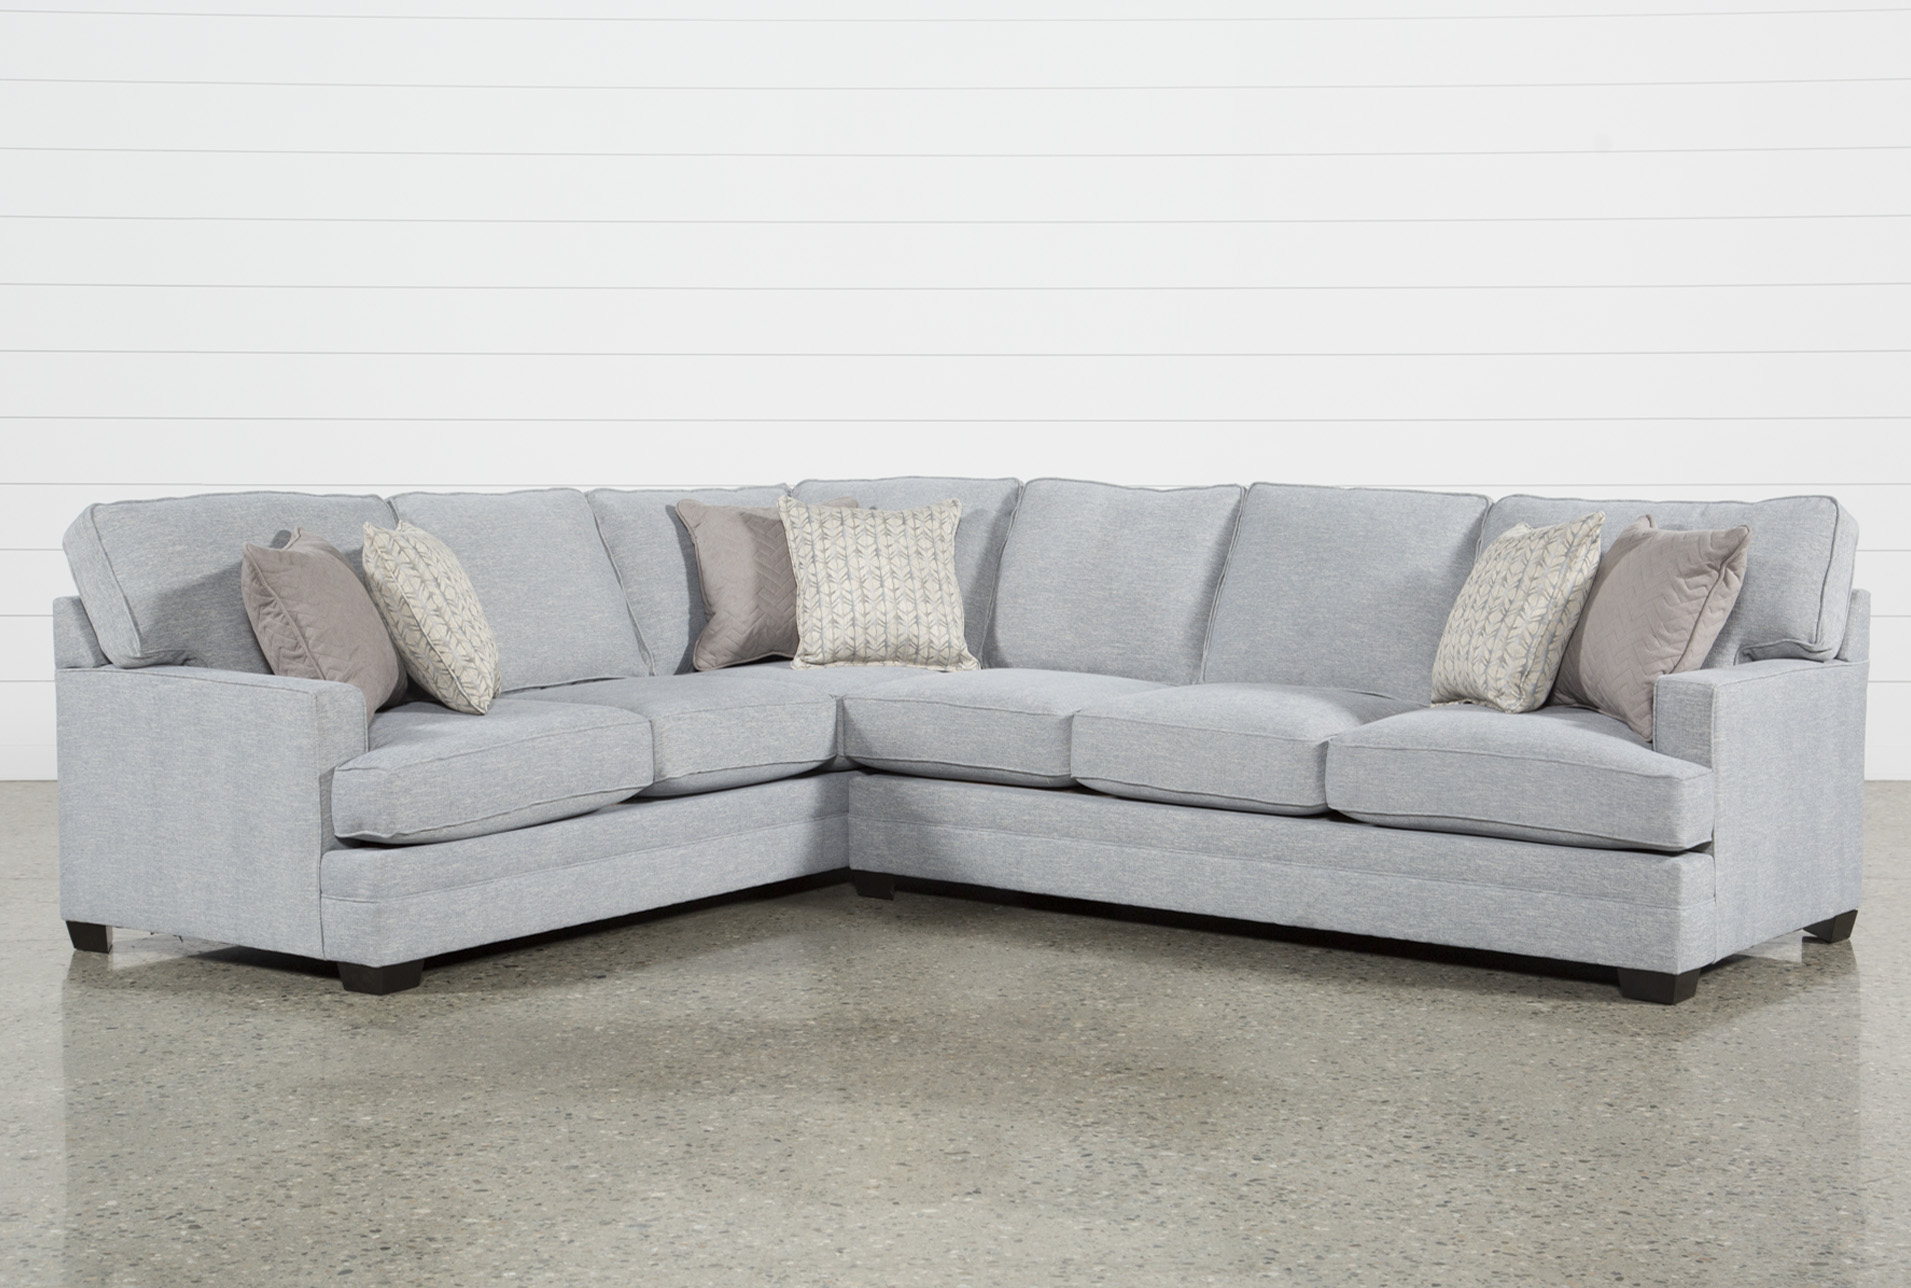 Josephine 2 Piece Sectional W/Raf Sofa (Qty: 1) Has Been Successfully Added  To Your Cart.